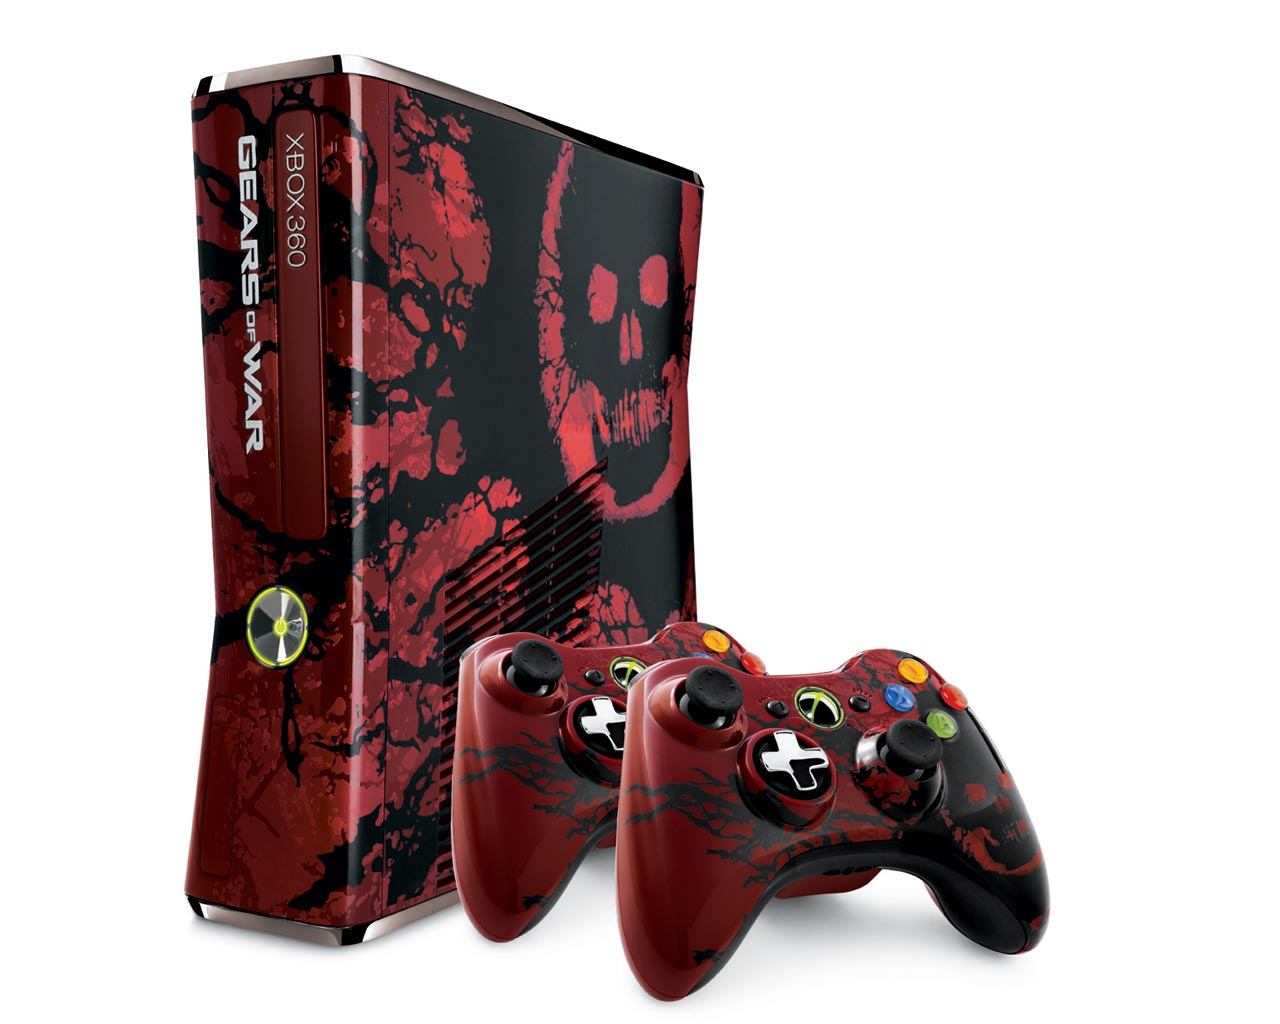 360: CONSOLE - SLIM - GEARS OF WAR 3 EDITION - INCL: 1 GOW 3 CTRL; HOOKUPS; 320GB HDD; GOW 3 GAME DISC (USED)